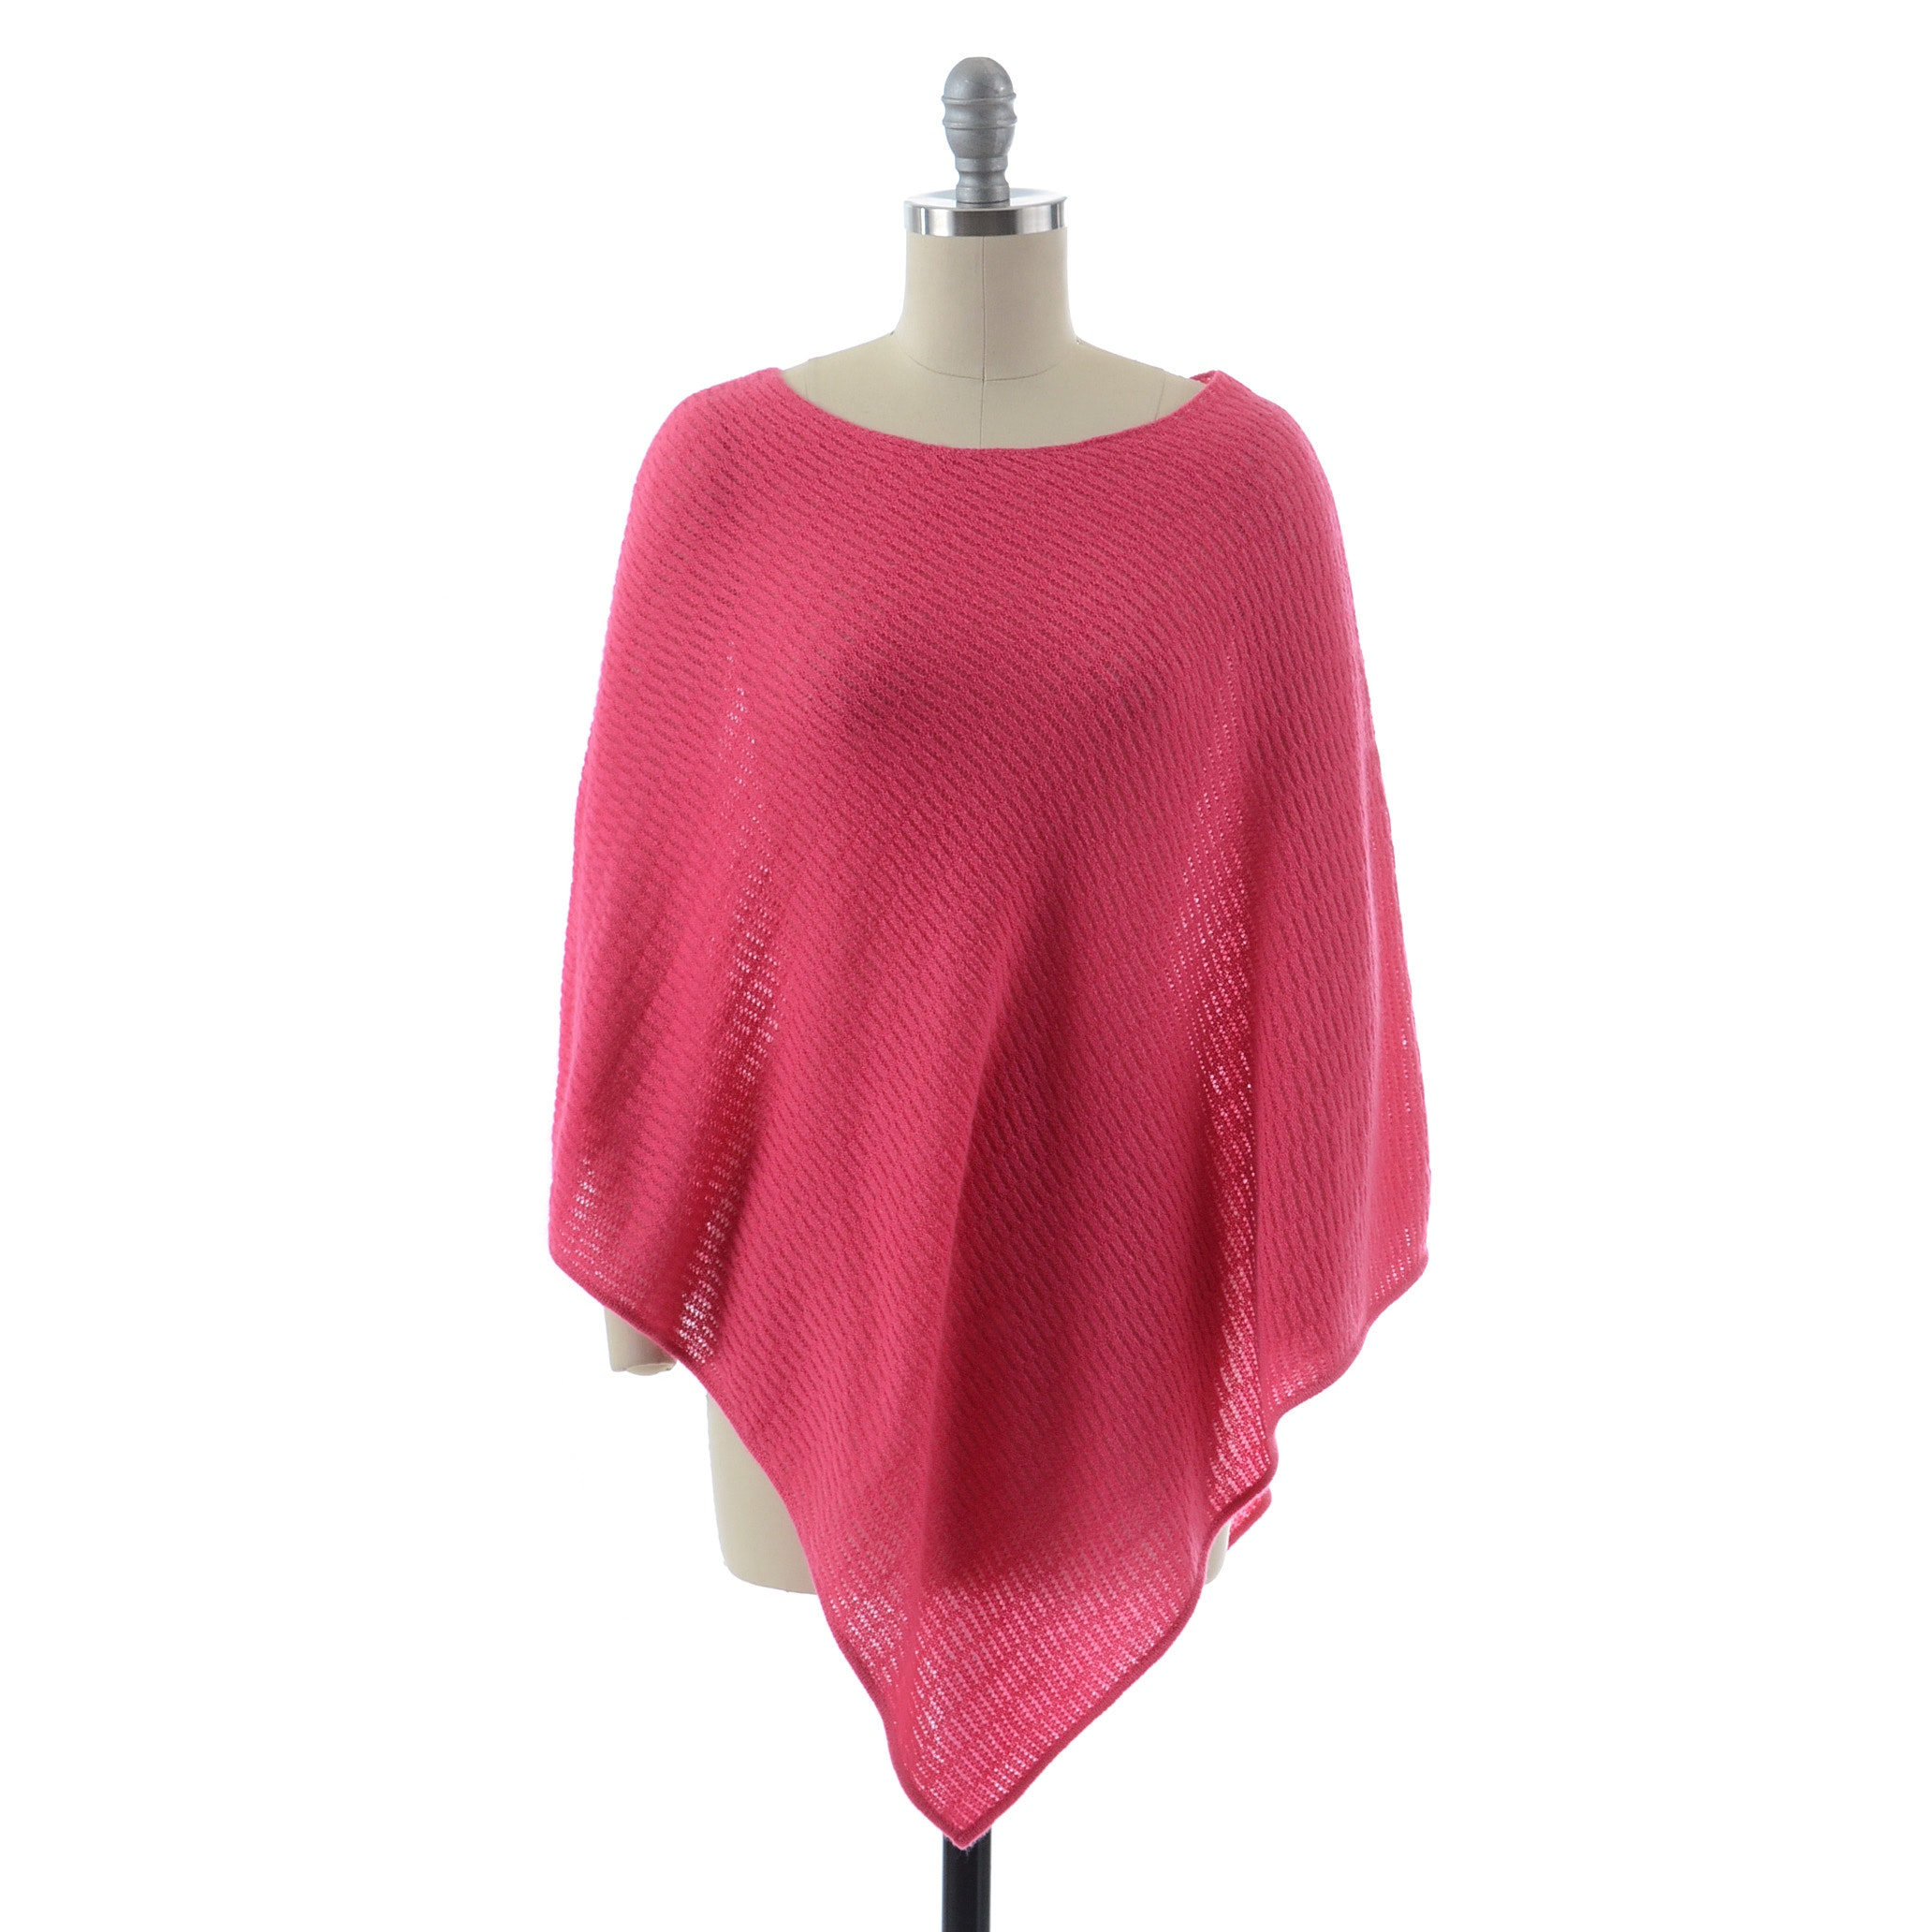 Claudia Nichole Hot Pink 100% Cashmere Knit Poncho